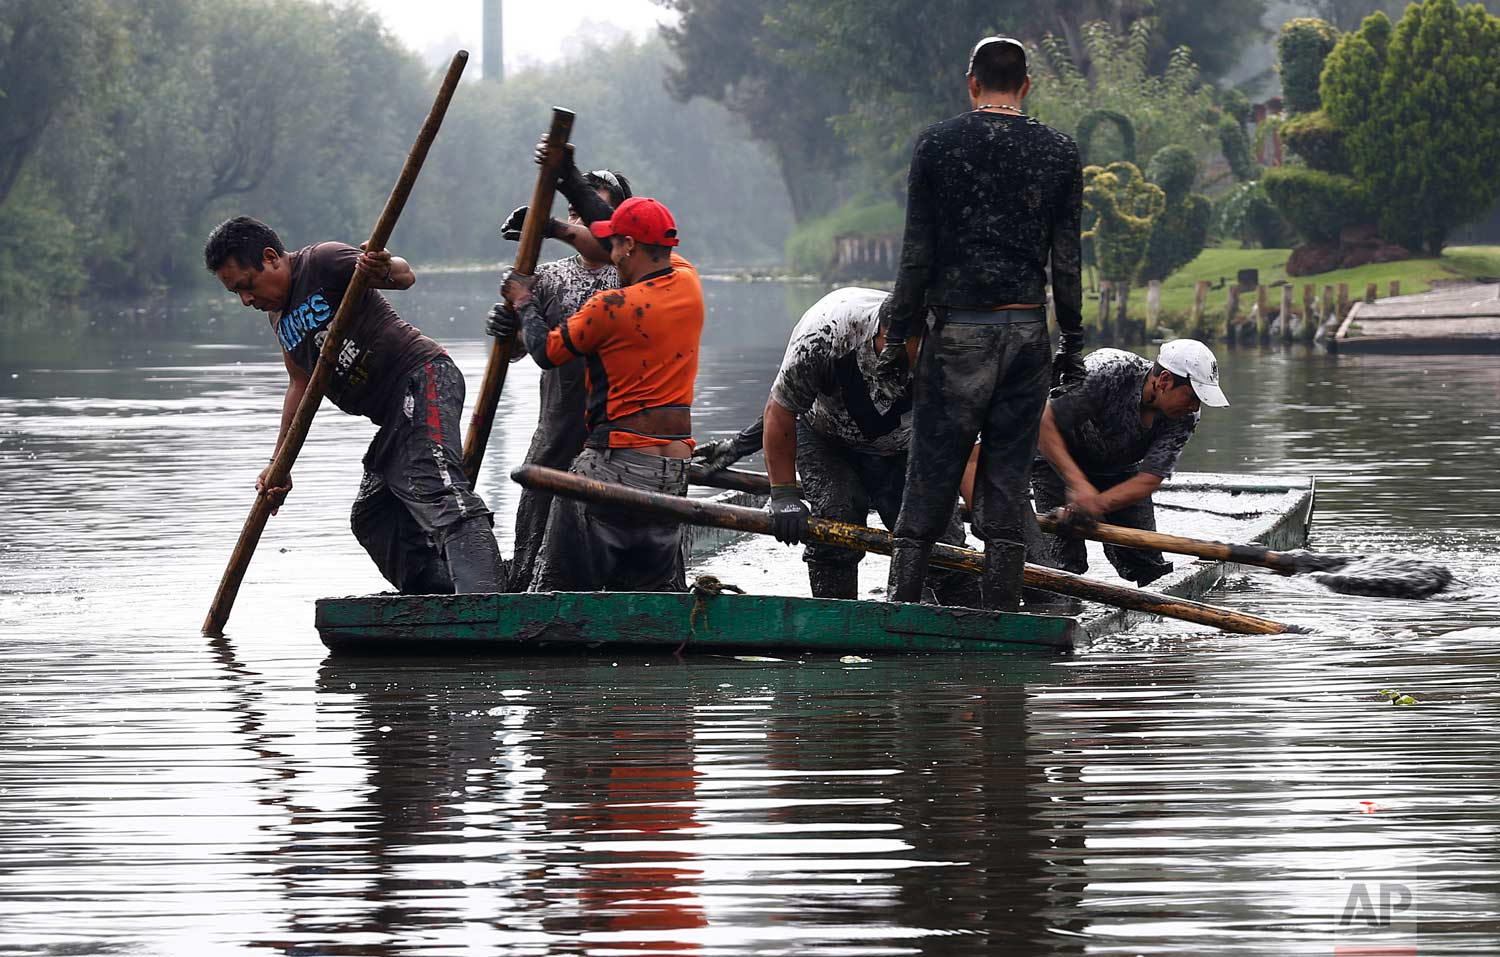 In this July 13, 2017 photo, men remove mud from a shallow channel so that tourist boats will be able to move through the channel, in Xochimilco, Mexico City. (AP Photo/Marco Ugarte)